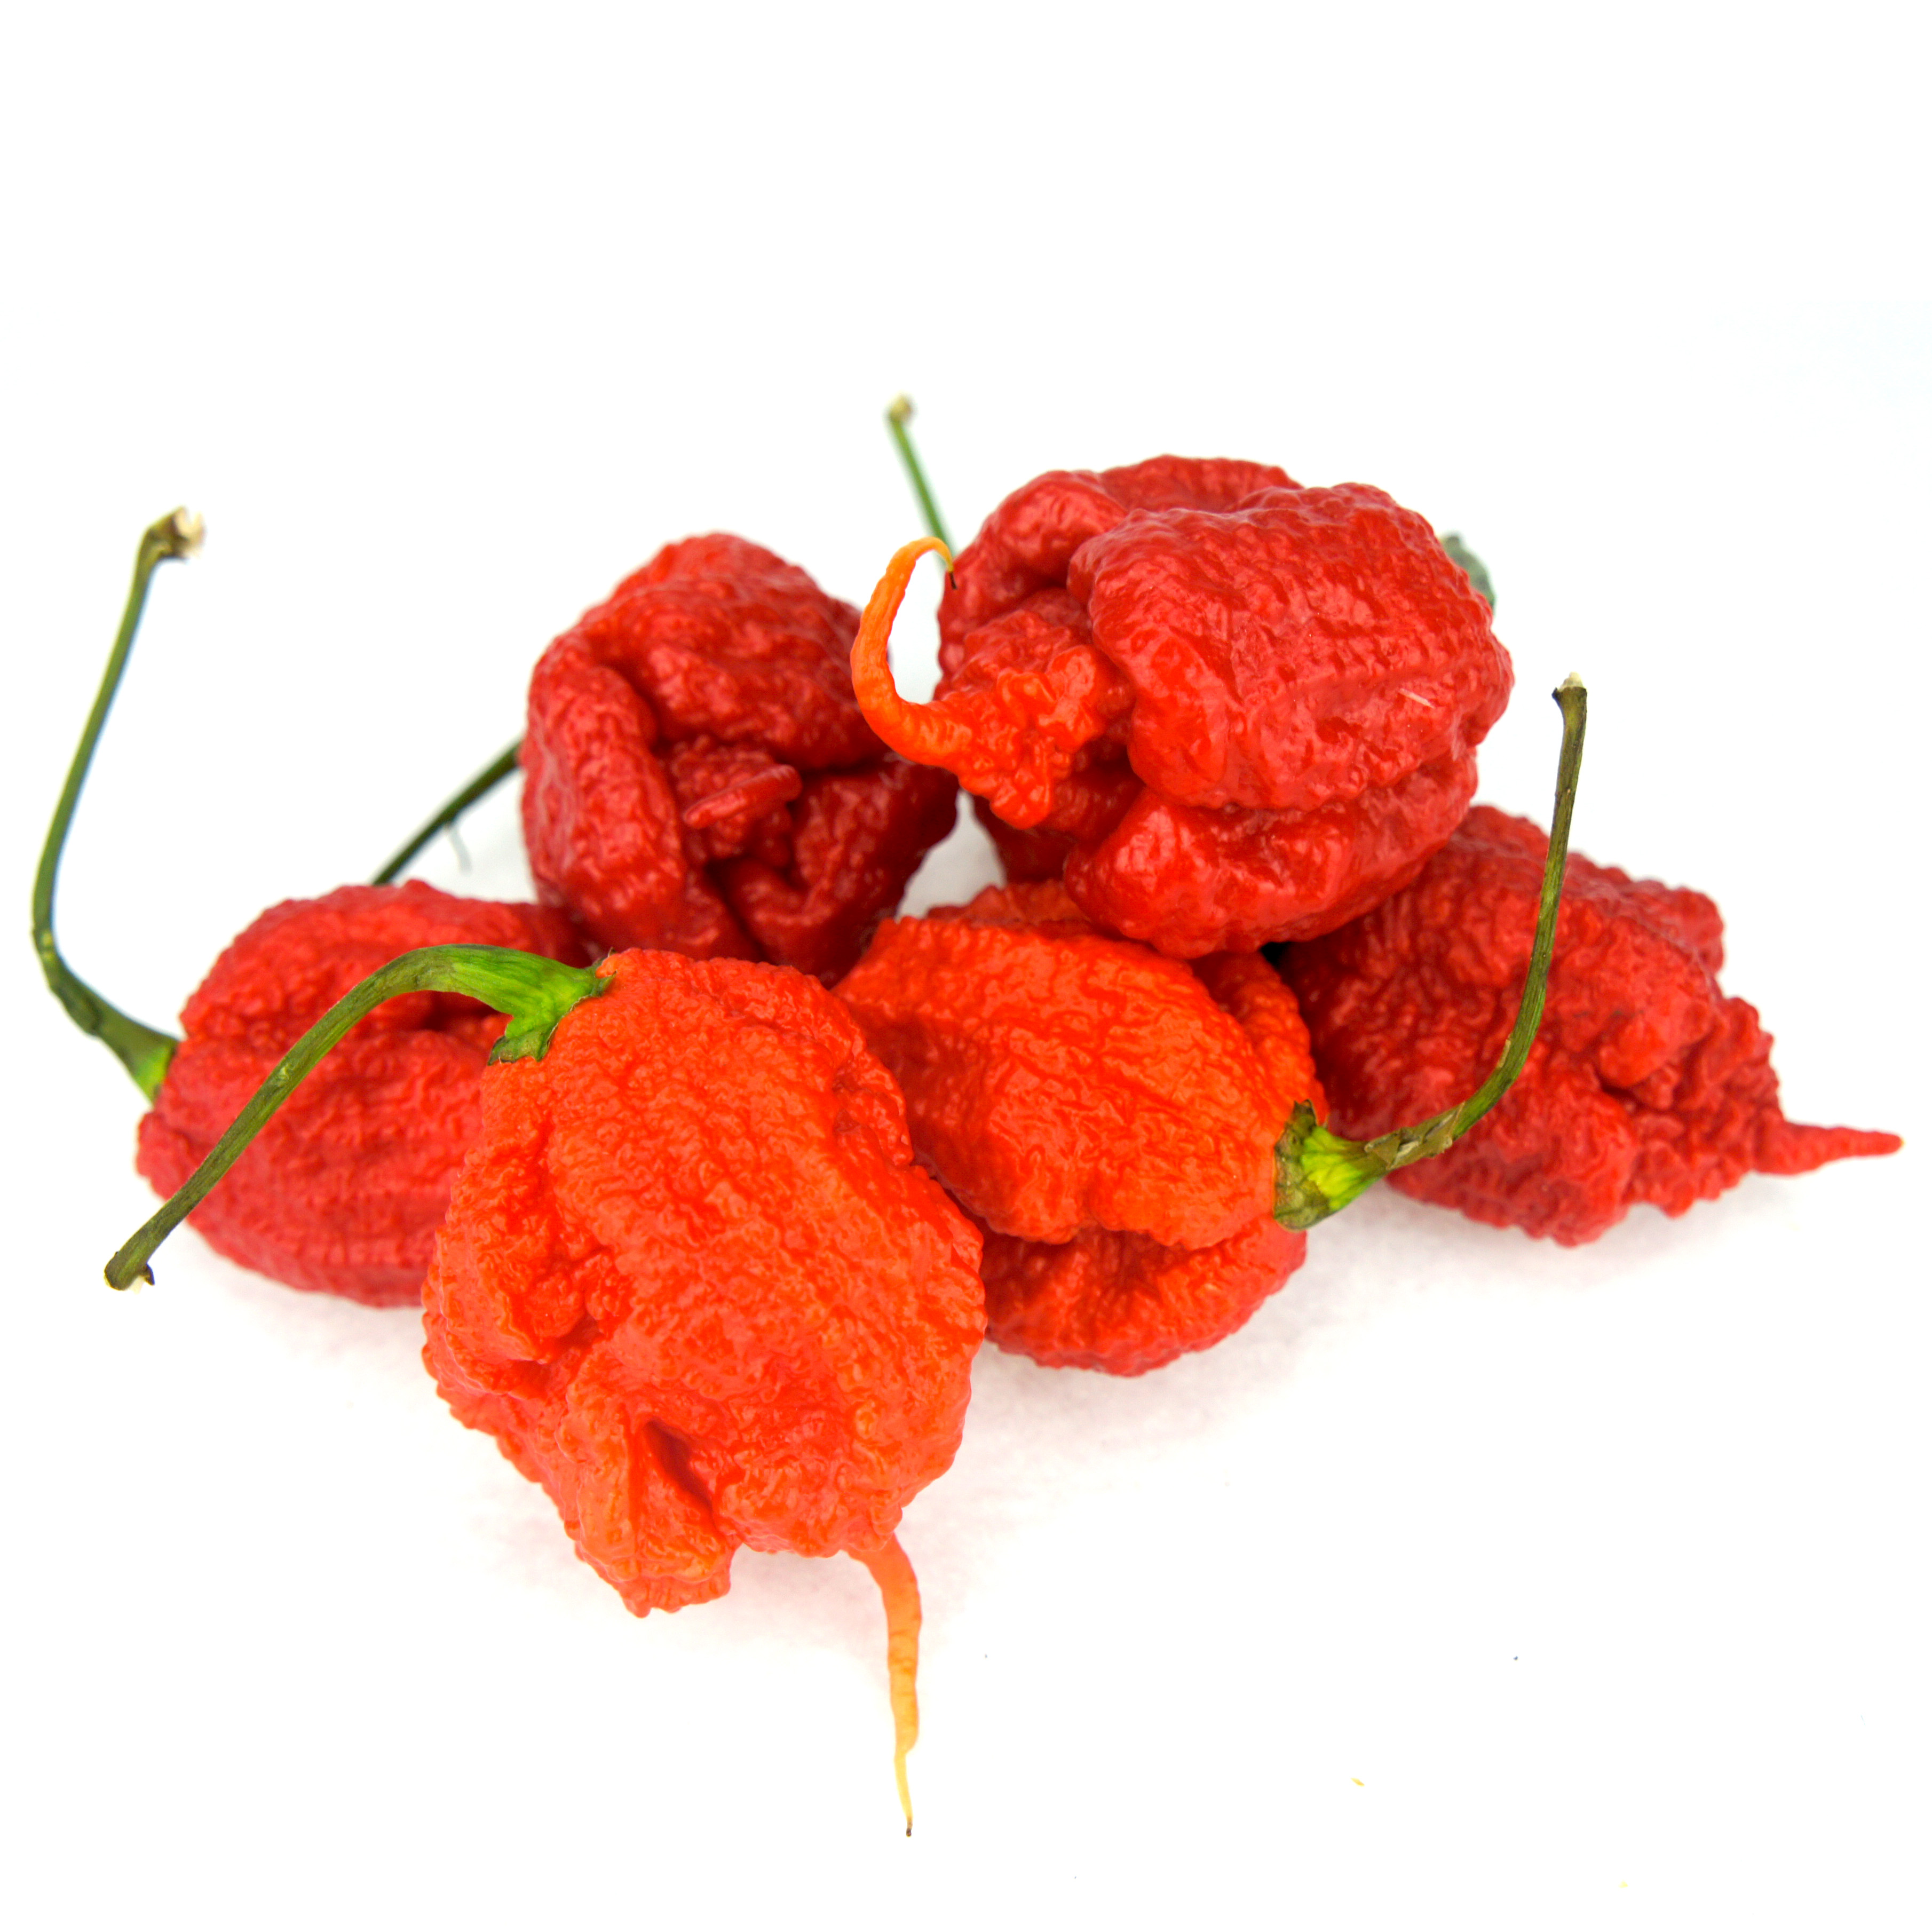 fireland foods carolina reaper chilisamen. Black Bedroom Furniture Sets. Home Design Ideas